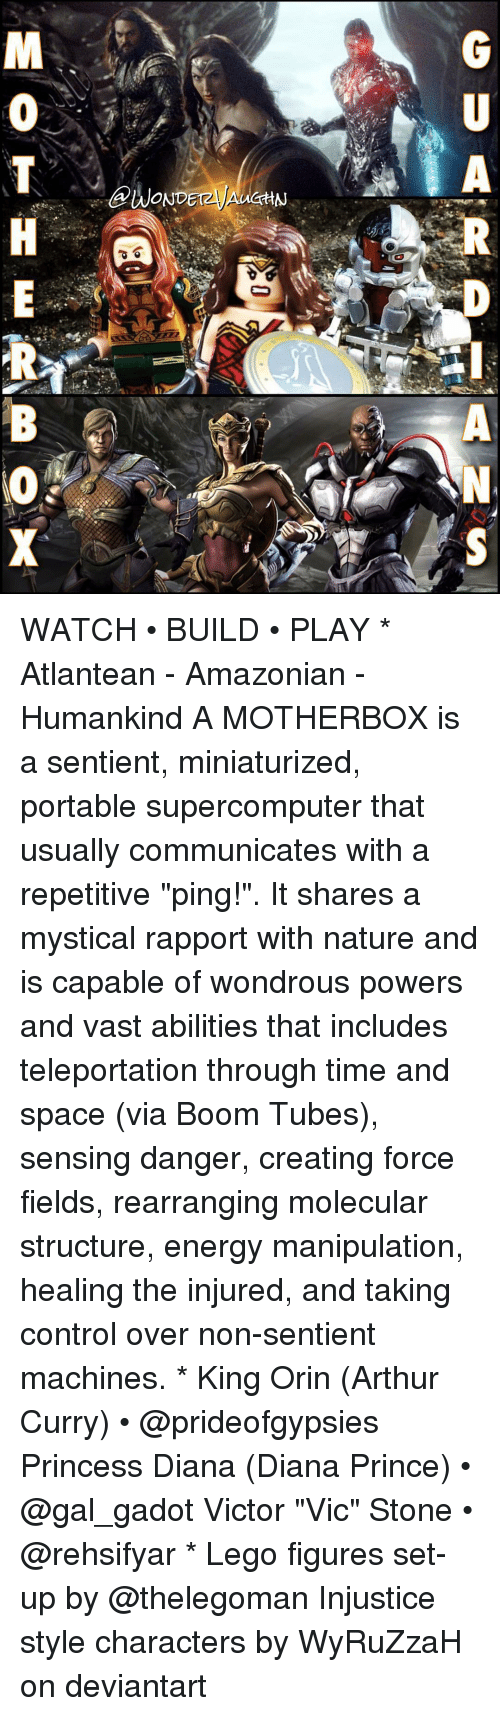 "Machining: A  @WONDETzyAUCHN  GU  RP-ANS  MOTH E  RB (O X WATCH • BUILD • PLAY * Atlantean - Amazonian - Humankind A MOTHERBOX is a sentient, miniaturized, portable supercomputer that usually communicates with a repetitive ""ping!"". It shares a mystical rapport with nature and is capable of wondrous powers and vast abilities that includes teleportation through time and space (via Boom Tubes), sensing danger, creating force fields, rearranging molecular structure, energy manipulation, healing the injured, and taking control over non-sentient machines. * King Orin (Arthur Curry) • @prideofgypsies Princess Diana (Diana Prince) • @gal_gadot Victor ""Vic"" Stone • @rehsifyar * Lego figures set-up by @thelegoman Injustice style characters by WyRuZzaH on deviantart"